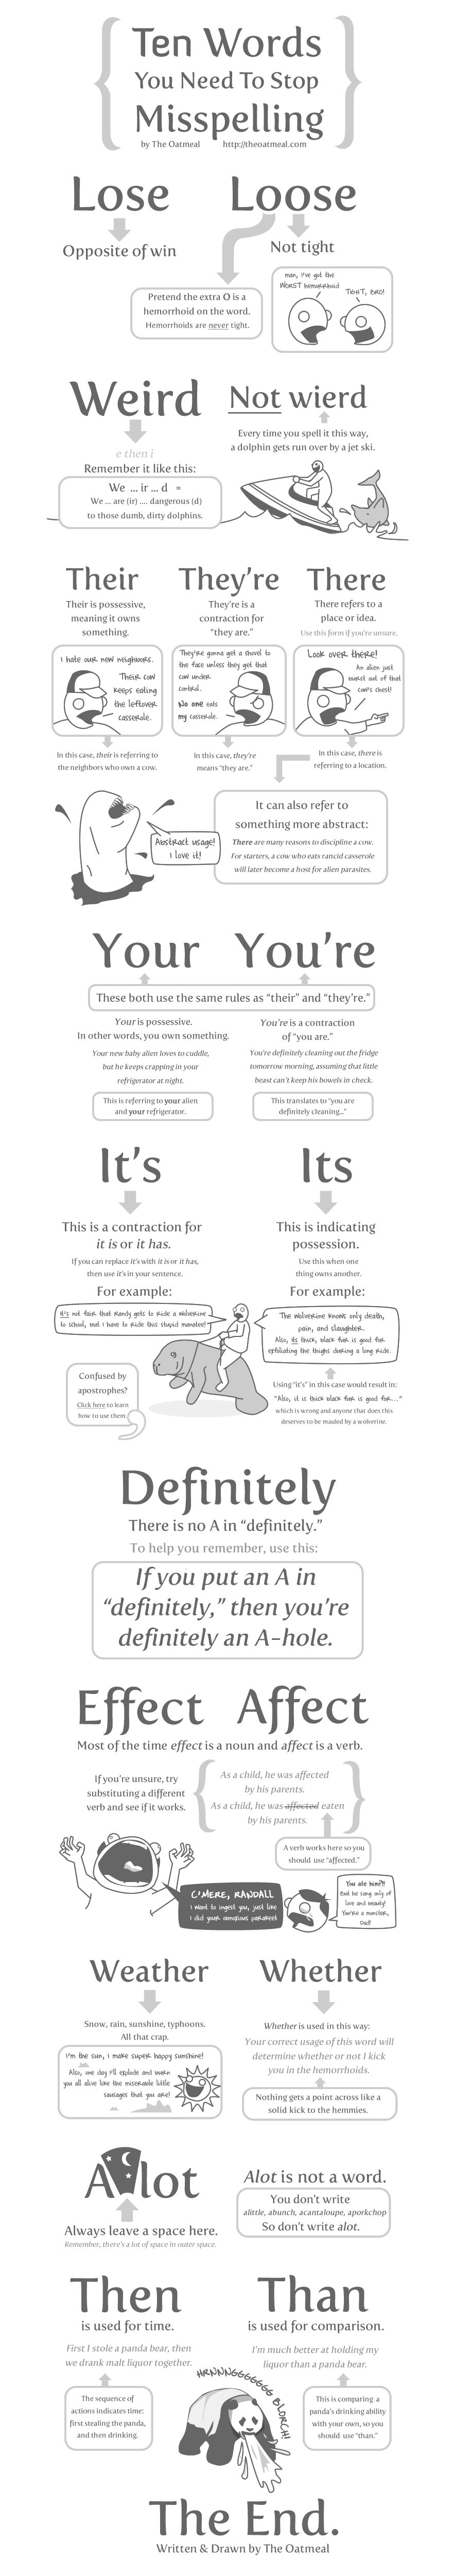 I wish I'd had this when I was teaching developmental college English classes. I think this would have made a lot more sense to my students than pages and pages of worksheets.